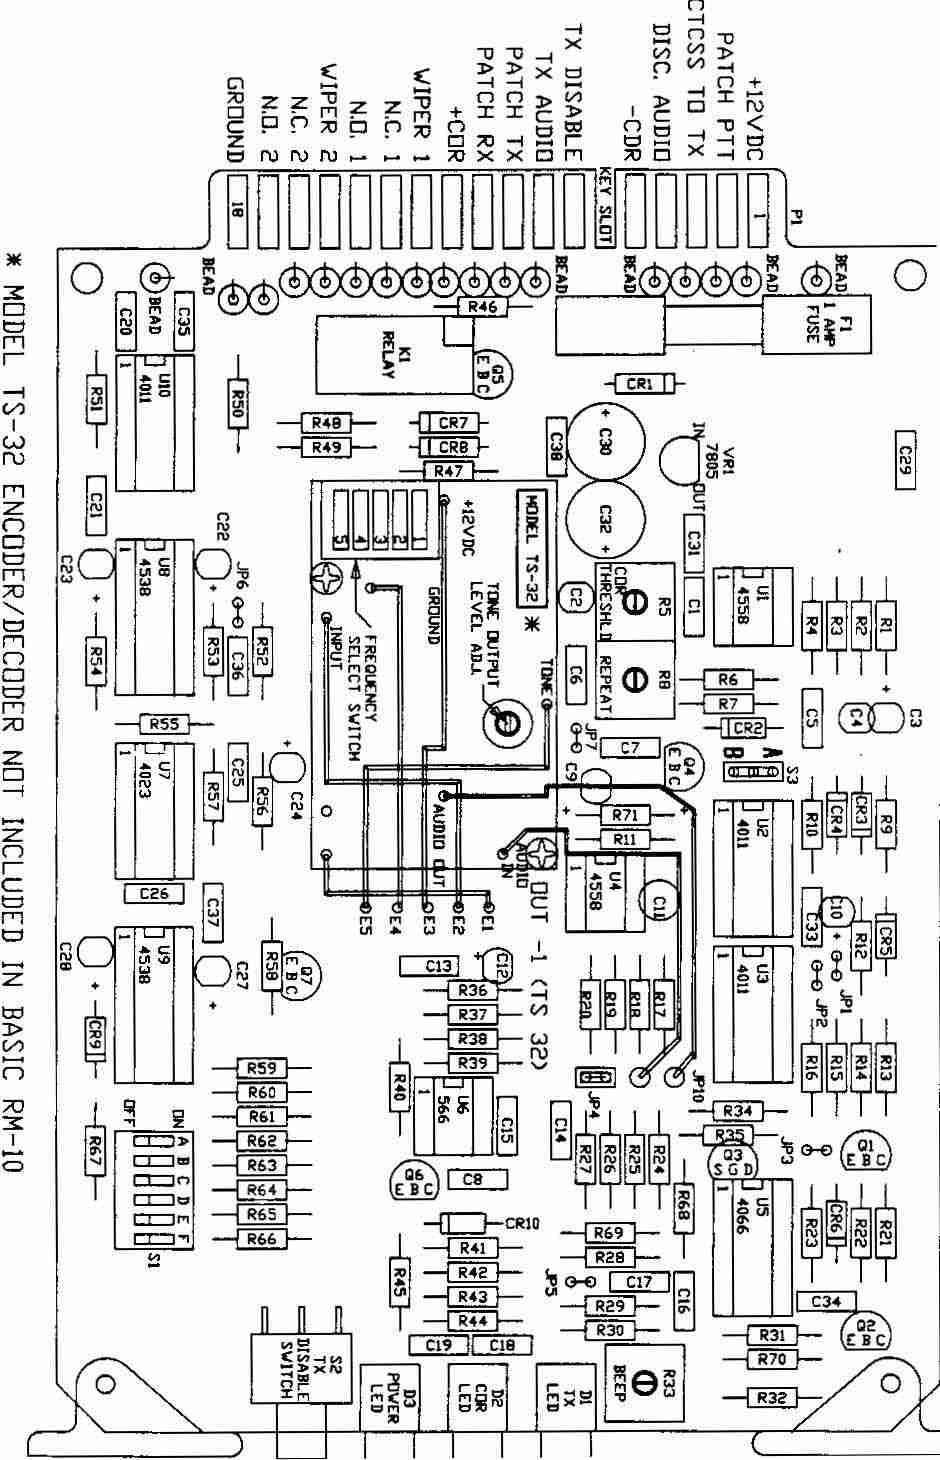 35 Lovely Whelen Strobe Light Wiring Diagram